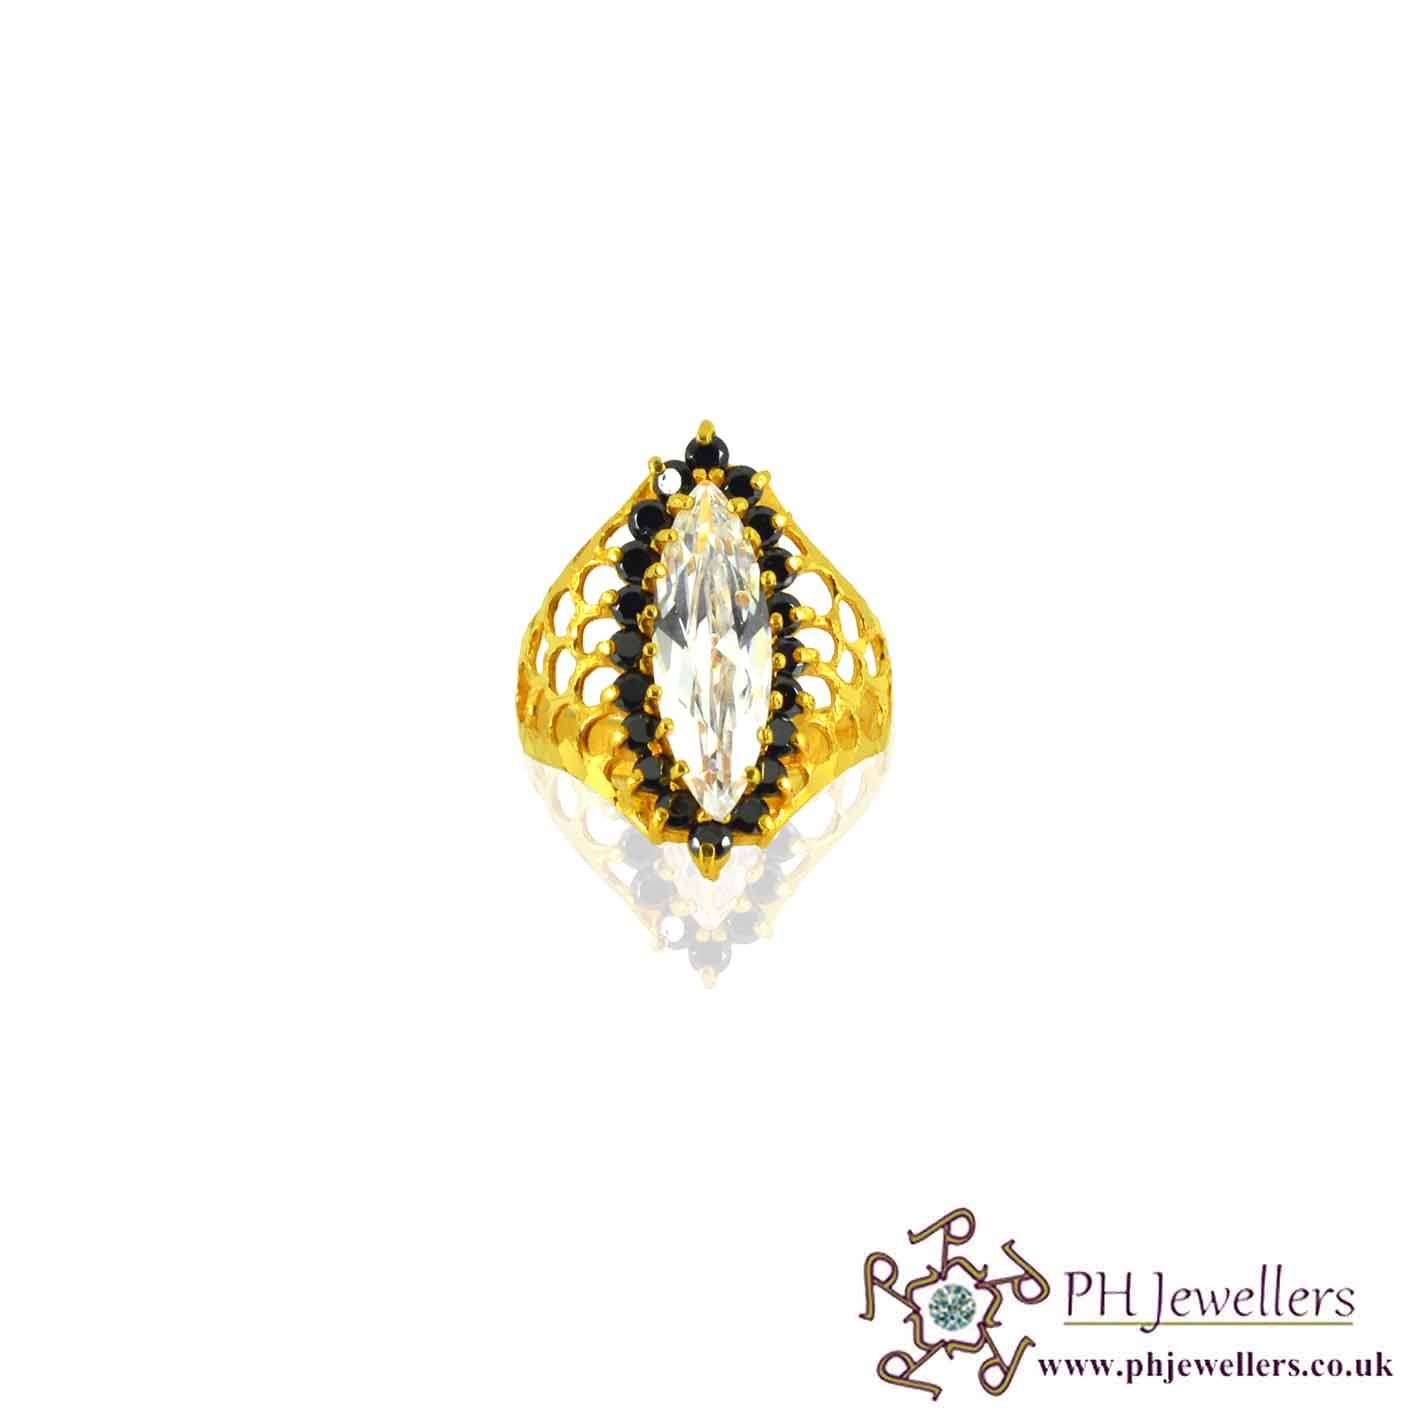 22ct 916 Hallmark Yellow Gold Fancy Marquise Size Q,R,S Ring CZ SR37